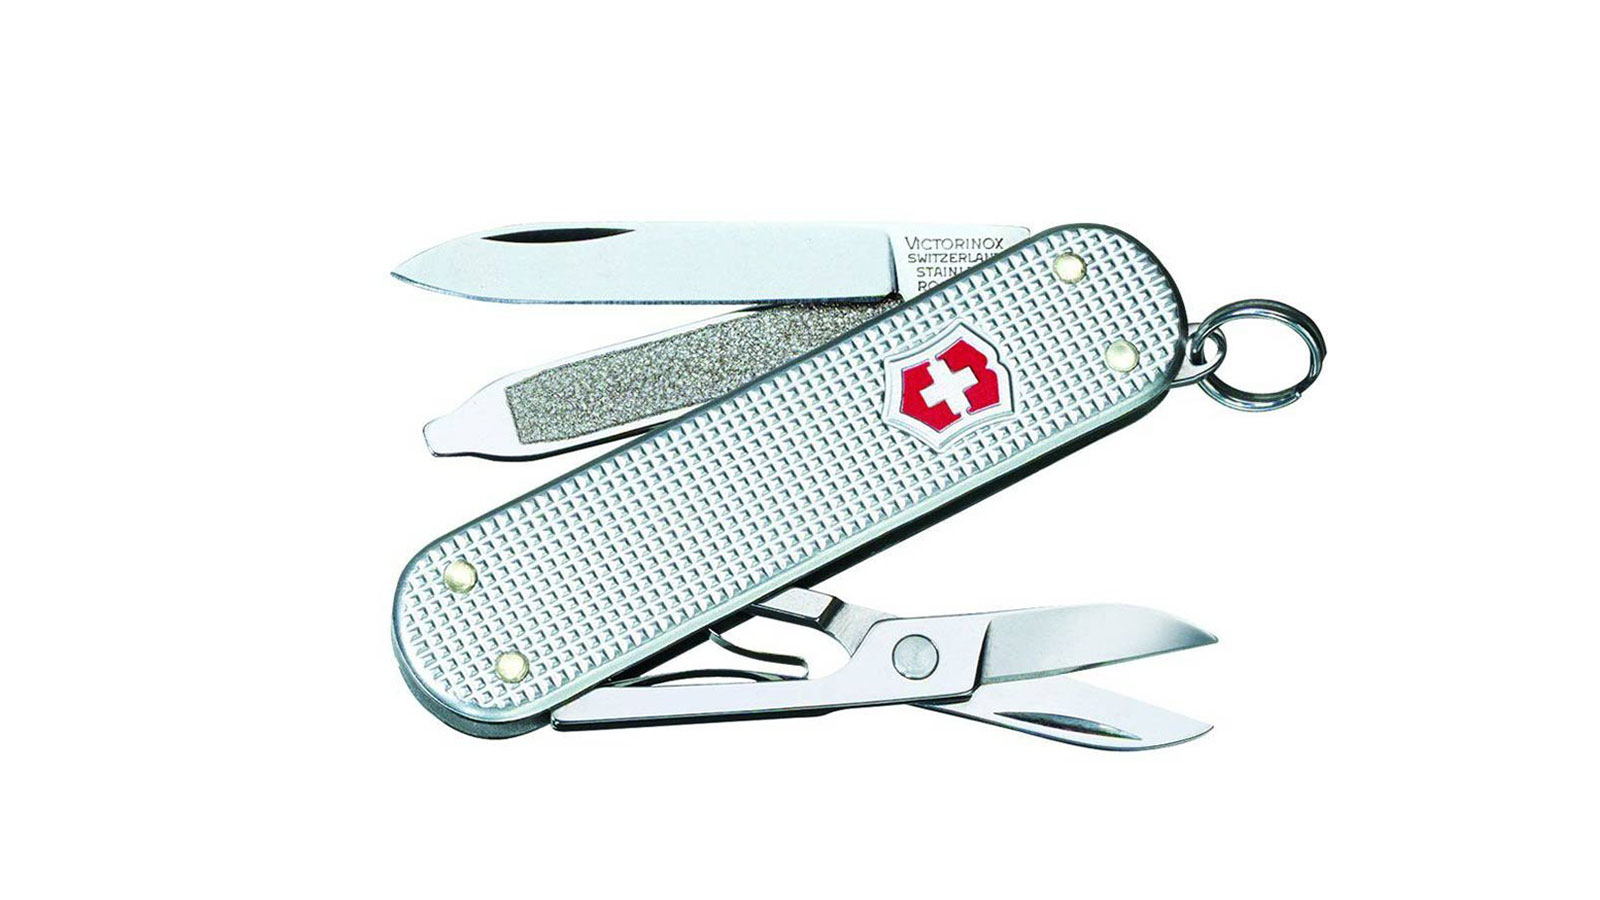 Victorinox Swiss Army Classic SD Pocket Knife | the best swiss army knives